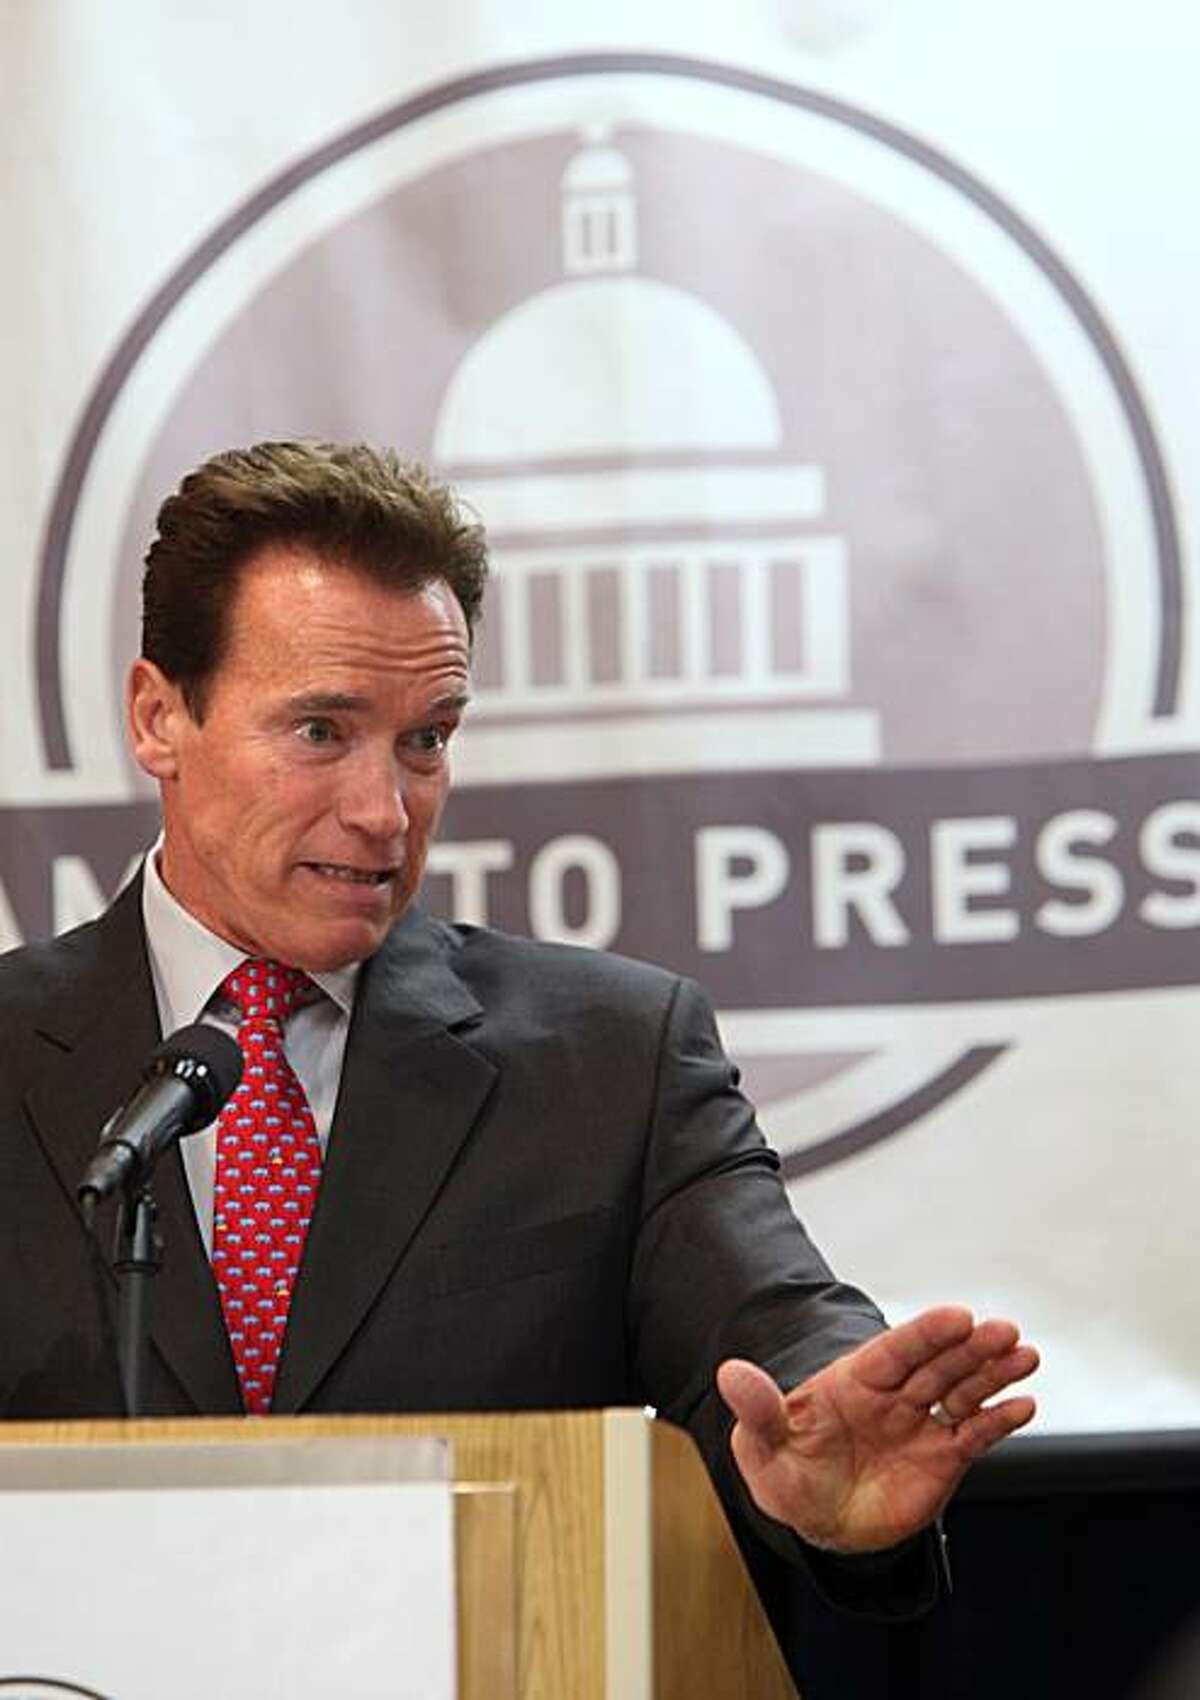 Gov. Arnold Schwarzenegger speaks at the Sacramento Press Club in Sacramento, Calif., Monday, Jan. 25, 2010. Schwarzenegger says he doesn't blame Californians for believing that the state will be worse off when he leaves office than when he started. A newField Poll release Sunday found that Schwarzenegger has just a 27 percent approval rating among registered voters, and lawmakers have an even worse rate of 16 percent.